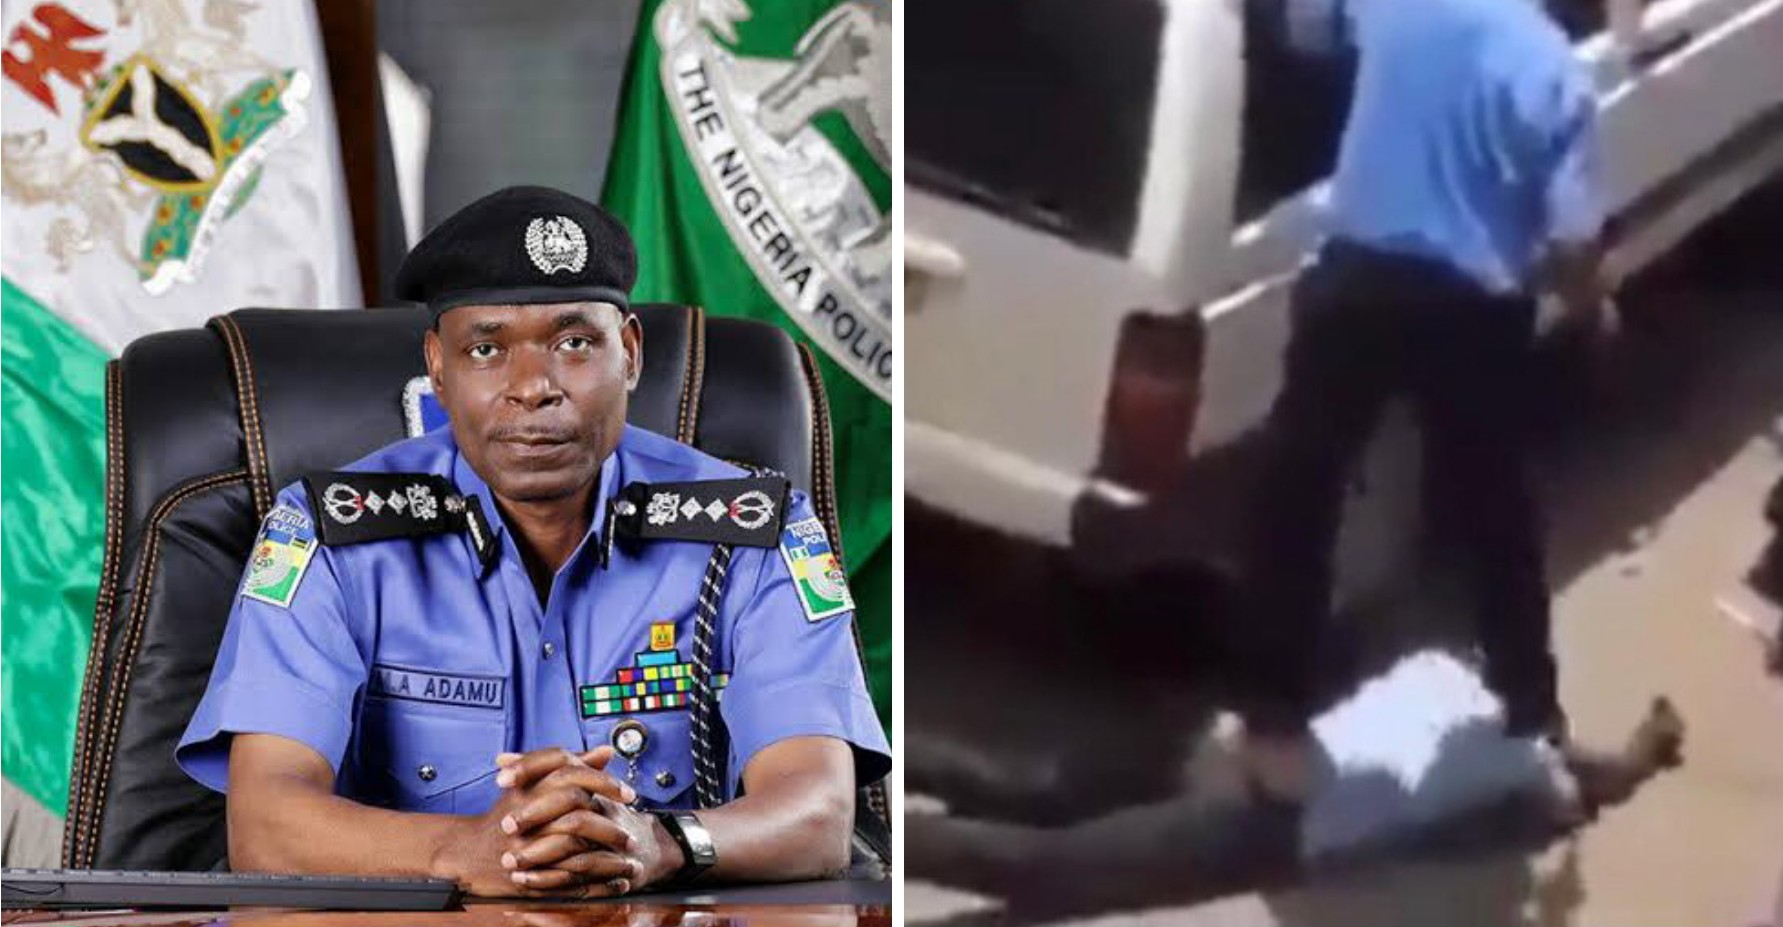 Nigeria Police reacts to viral video of security officer assaulting man